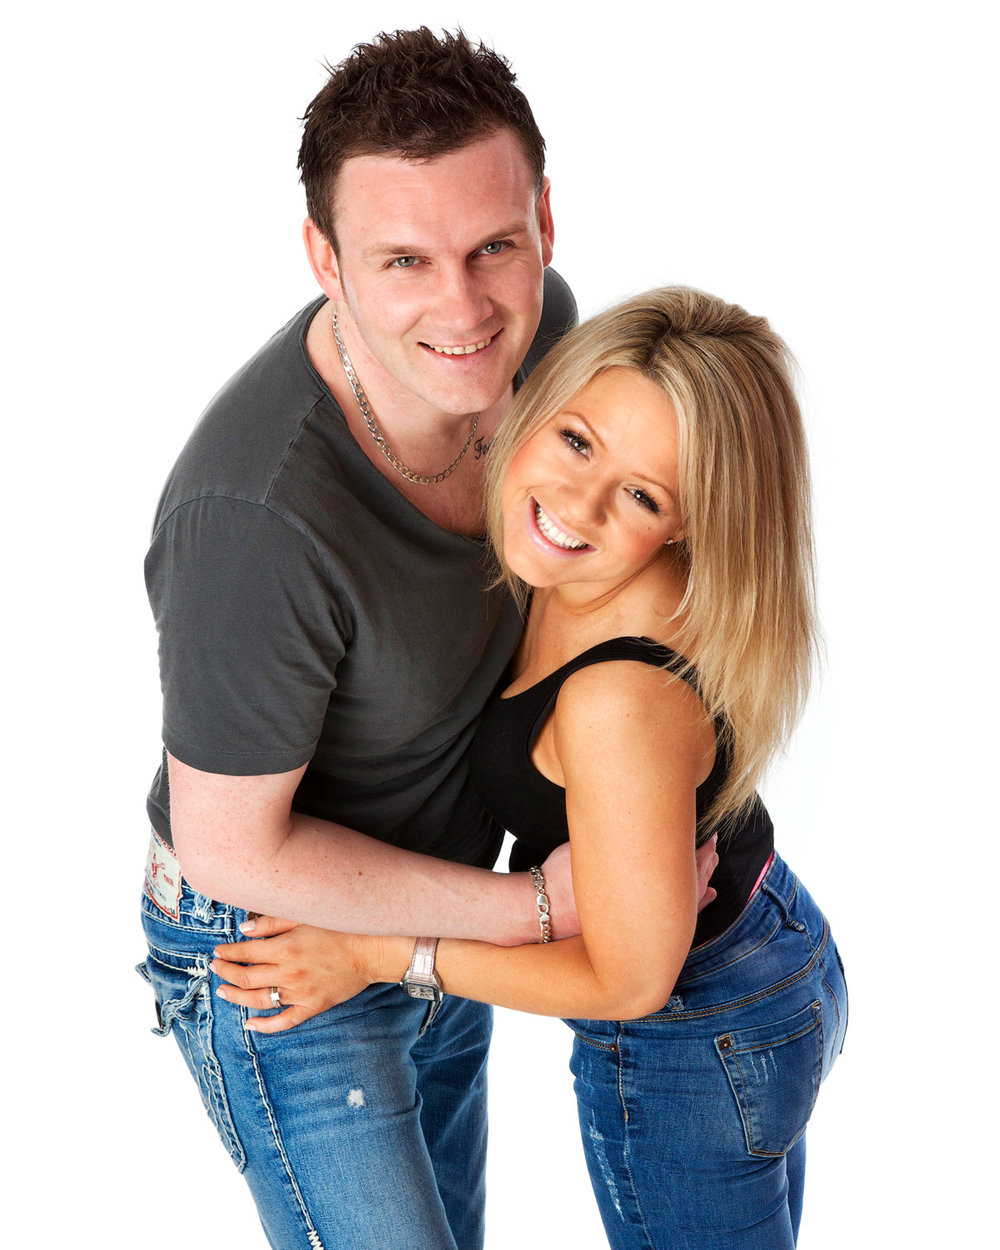 Couple_Adult_Portrait_Photographer_Newbury_Berkshire_056.jpg